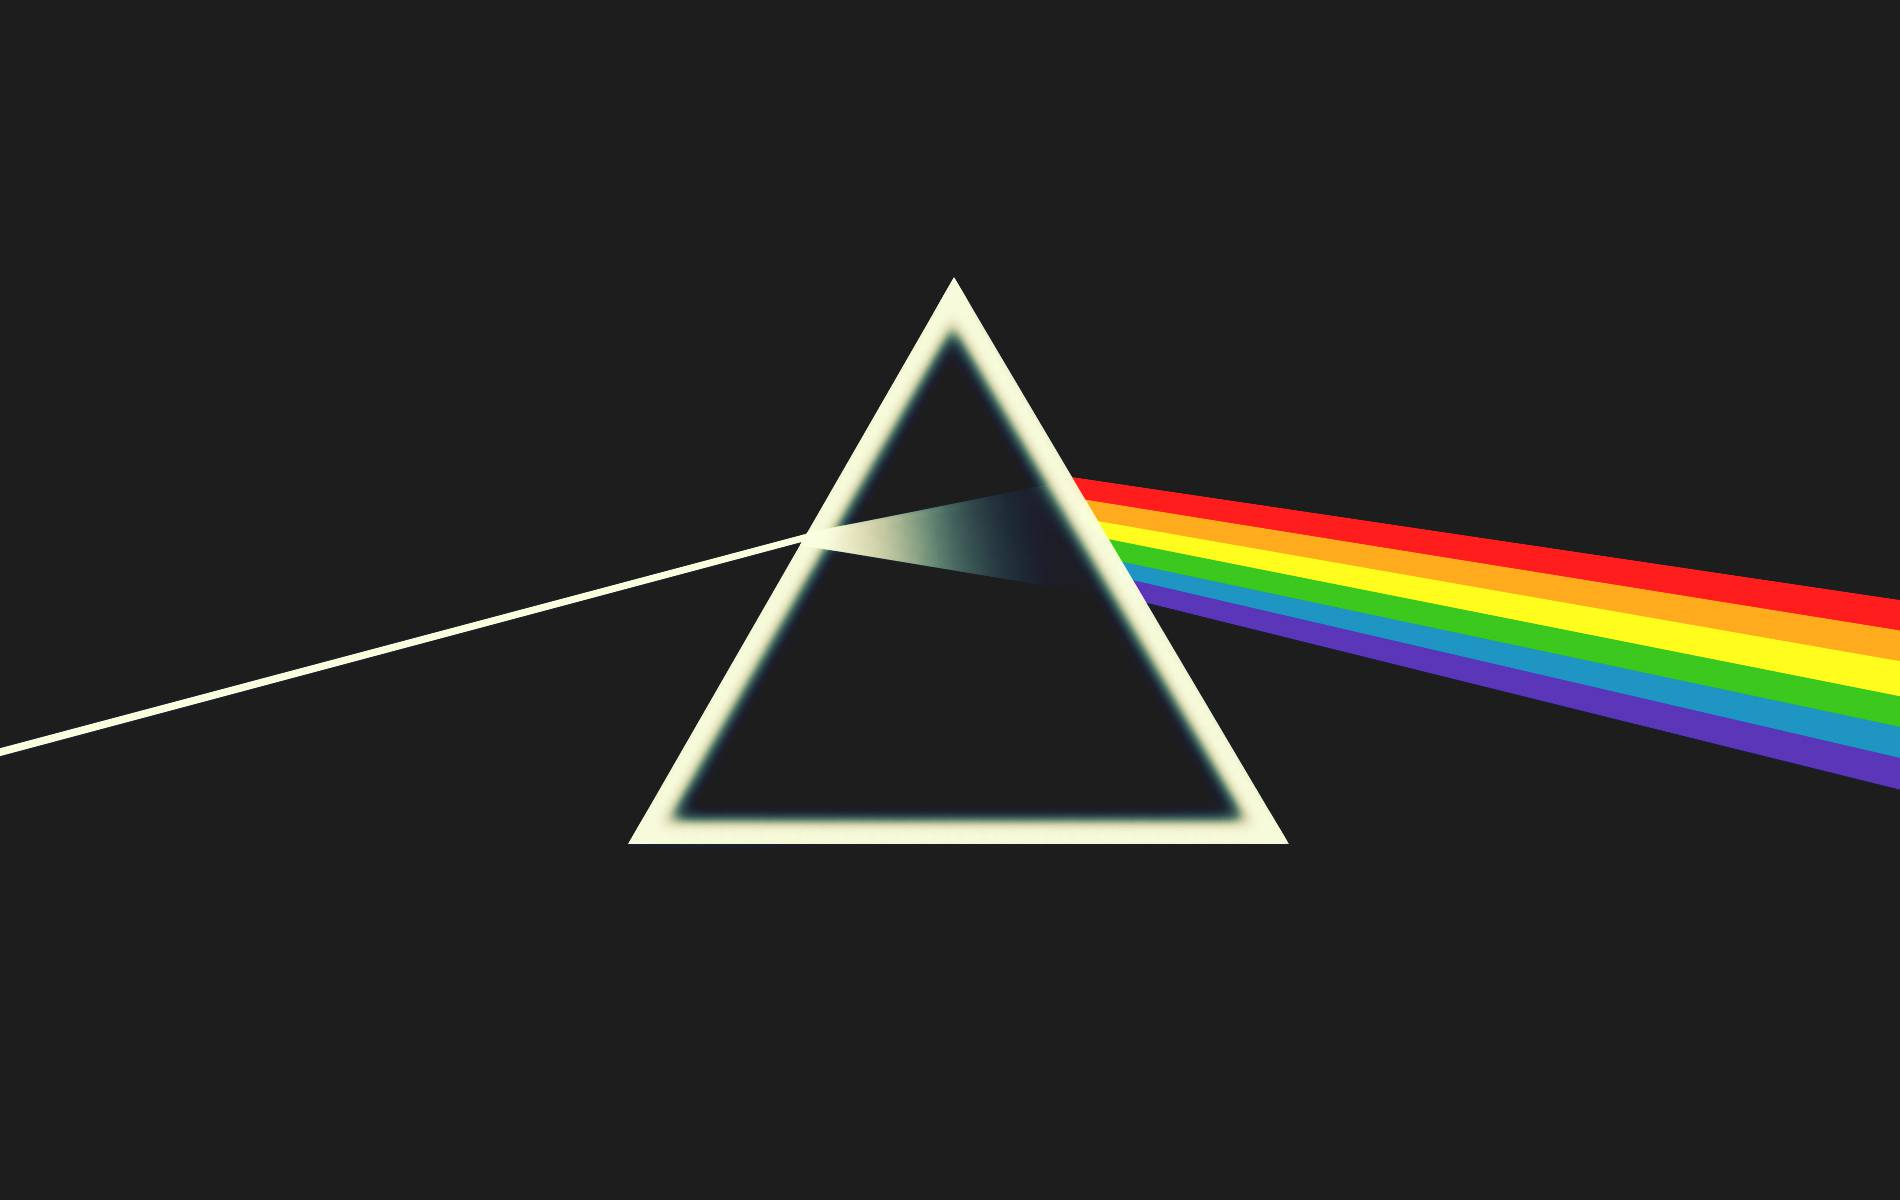 27 The Dark Side Of The Moon Hd Wallpapers On Wallpapersafari